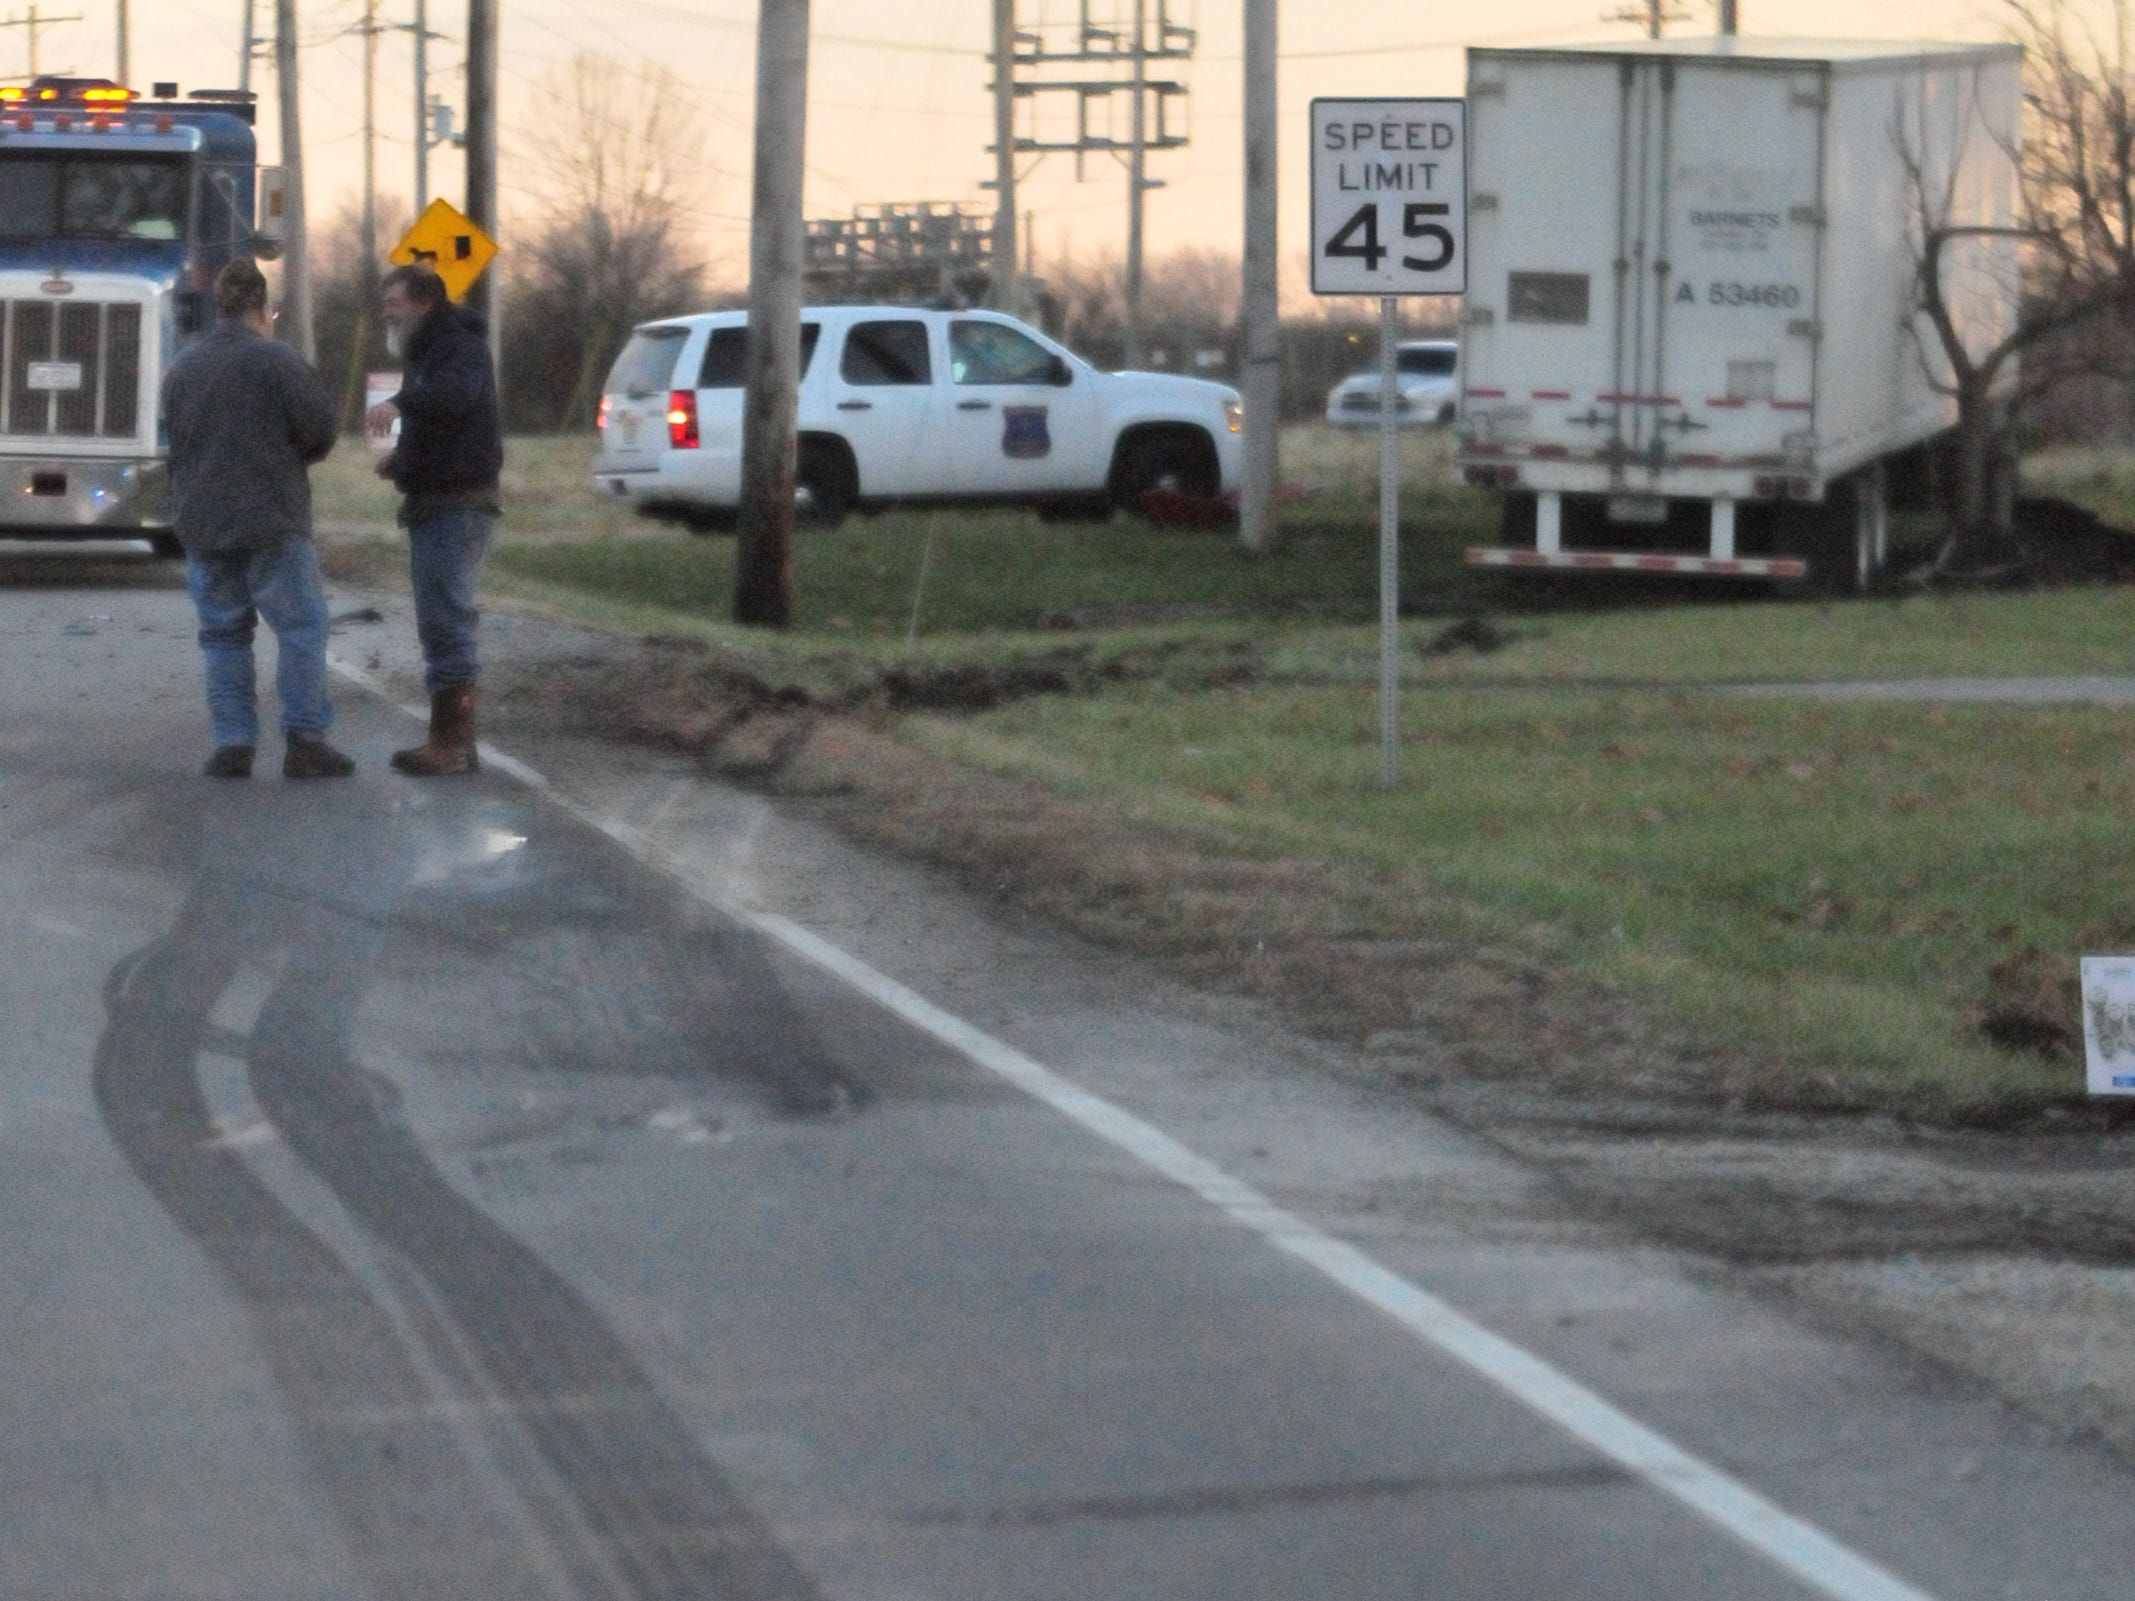 Tire tracks show the path of a semi tractor-trailer involved in a Monday afternoon accident on U.S. 35.